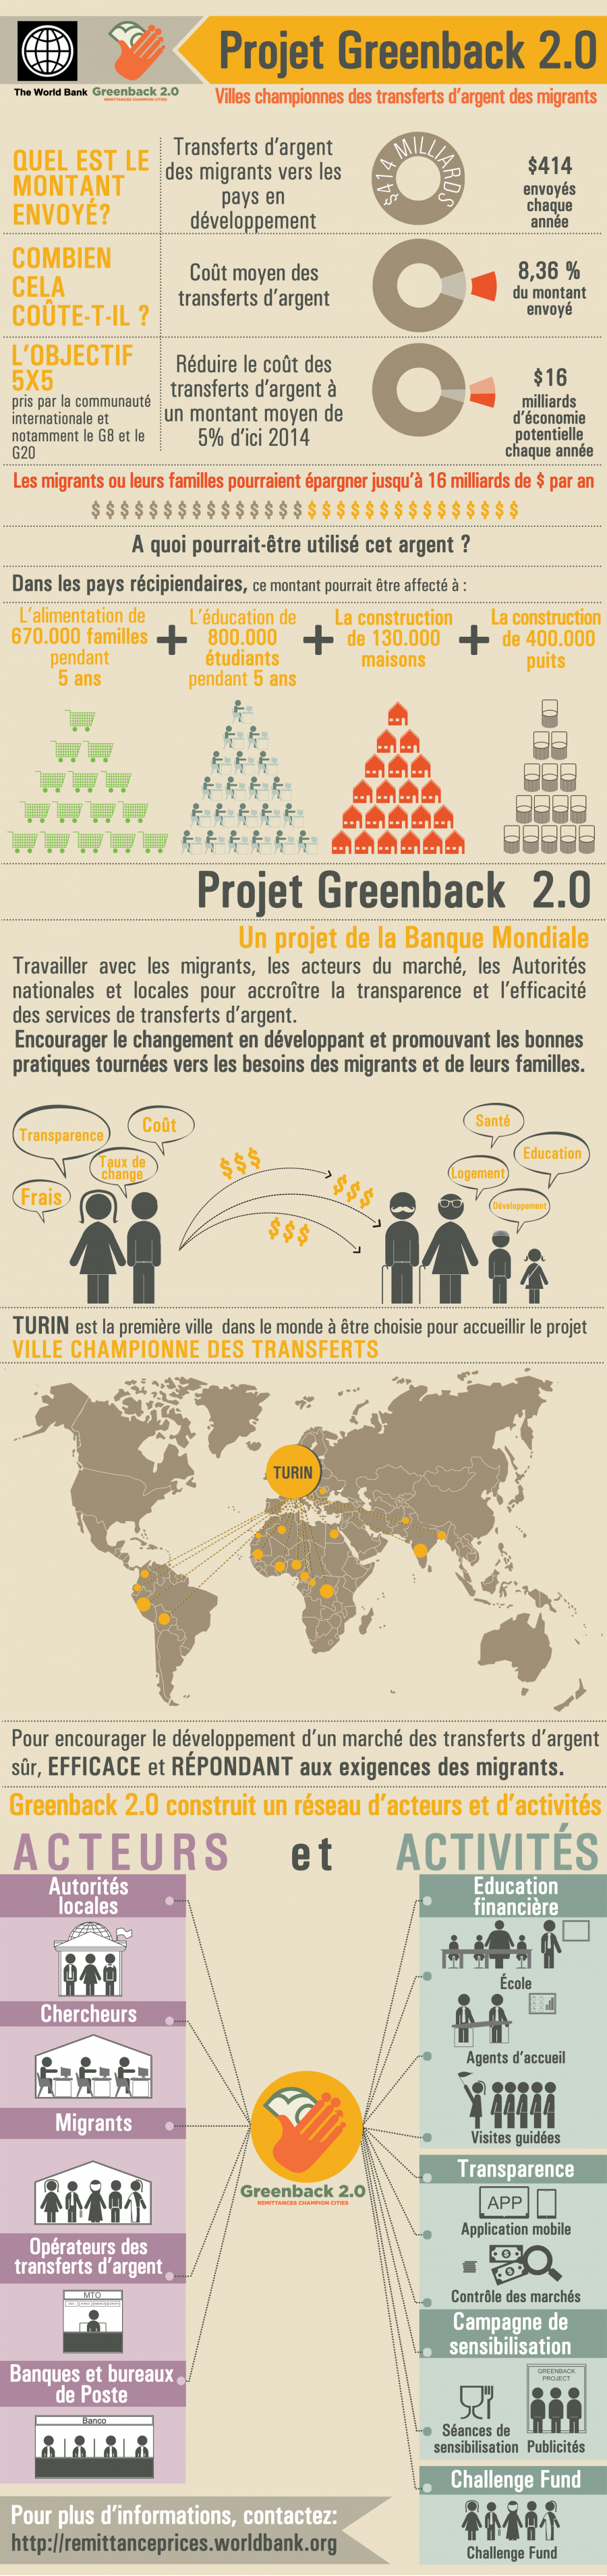 Infographie Project Greenback 2.0